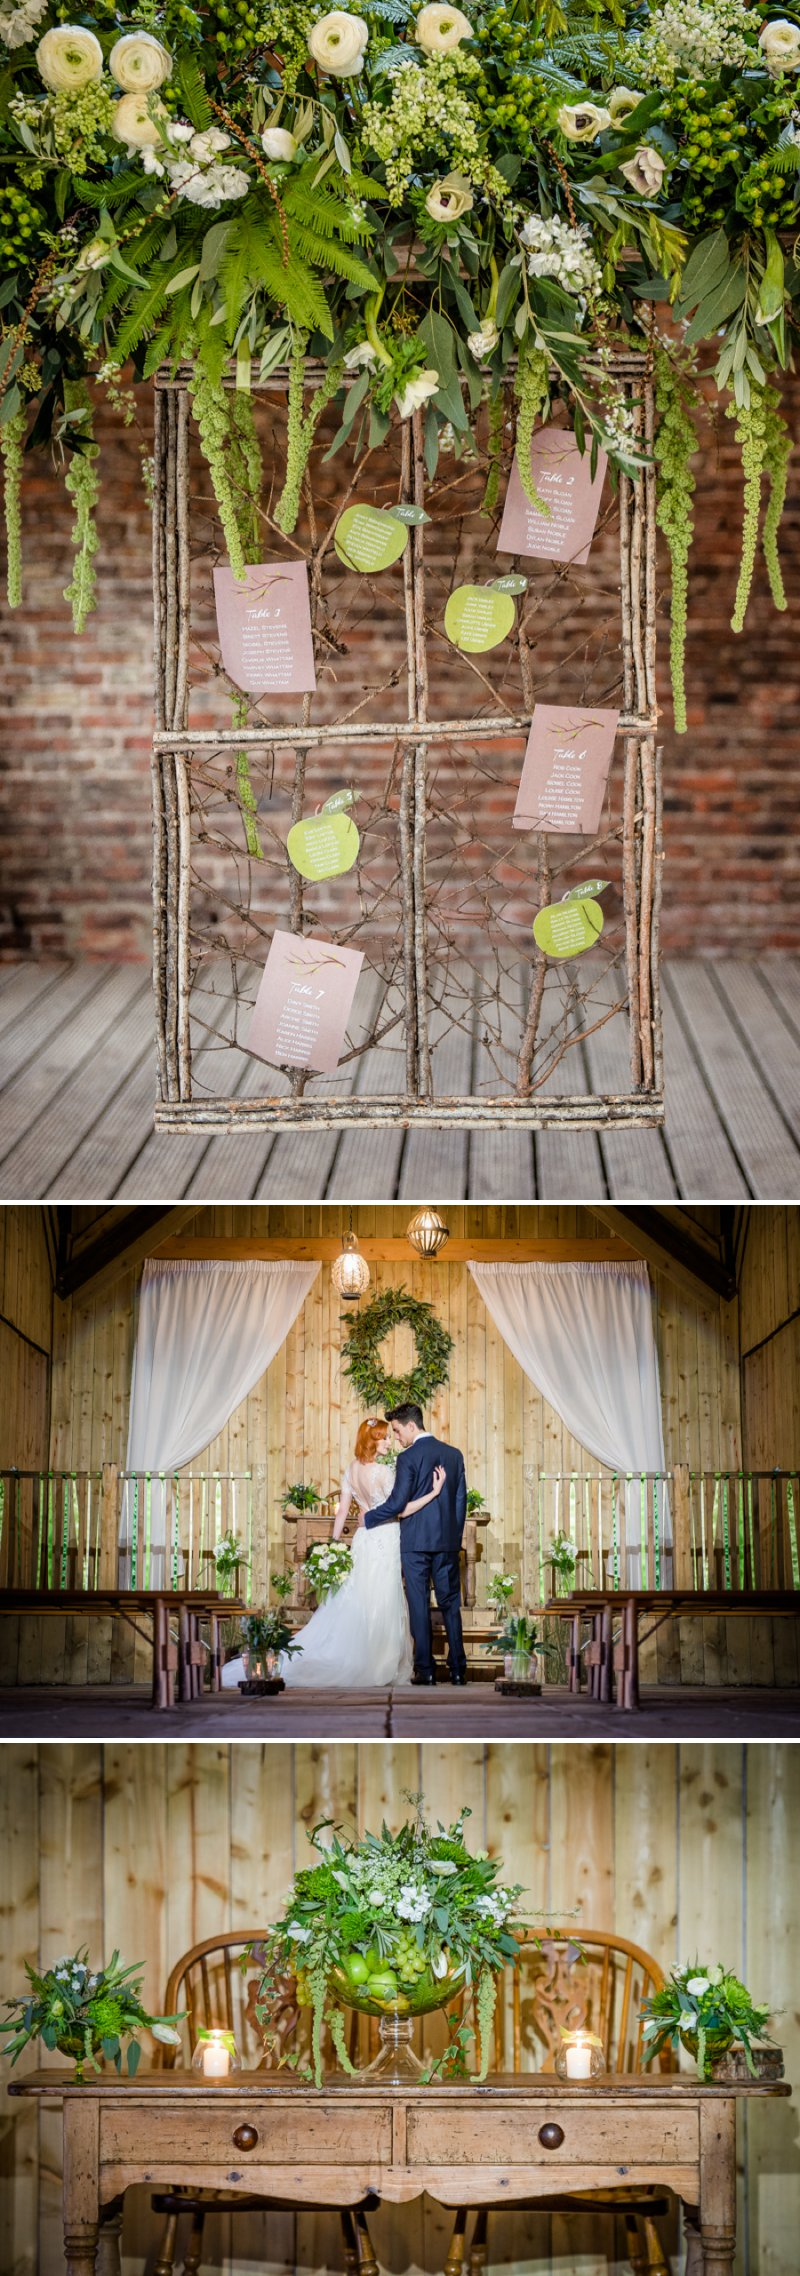 Rustic Glamour Inspired Shoot At York Maze With An Apple Green Colour Scheme Lots of Green Foliage And White Flowers With Images By Dominic Wright Photography 8